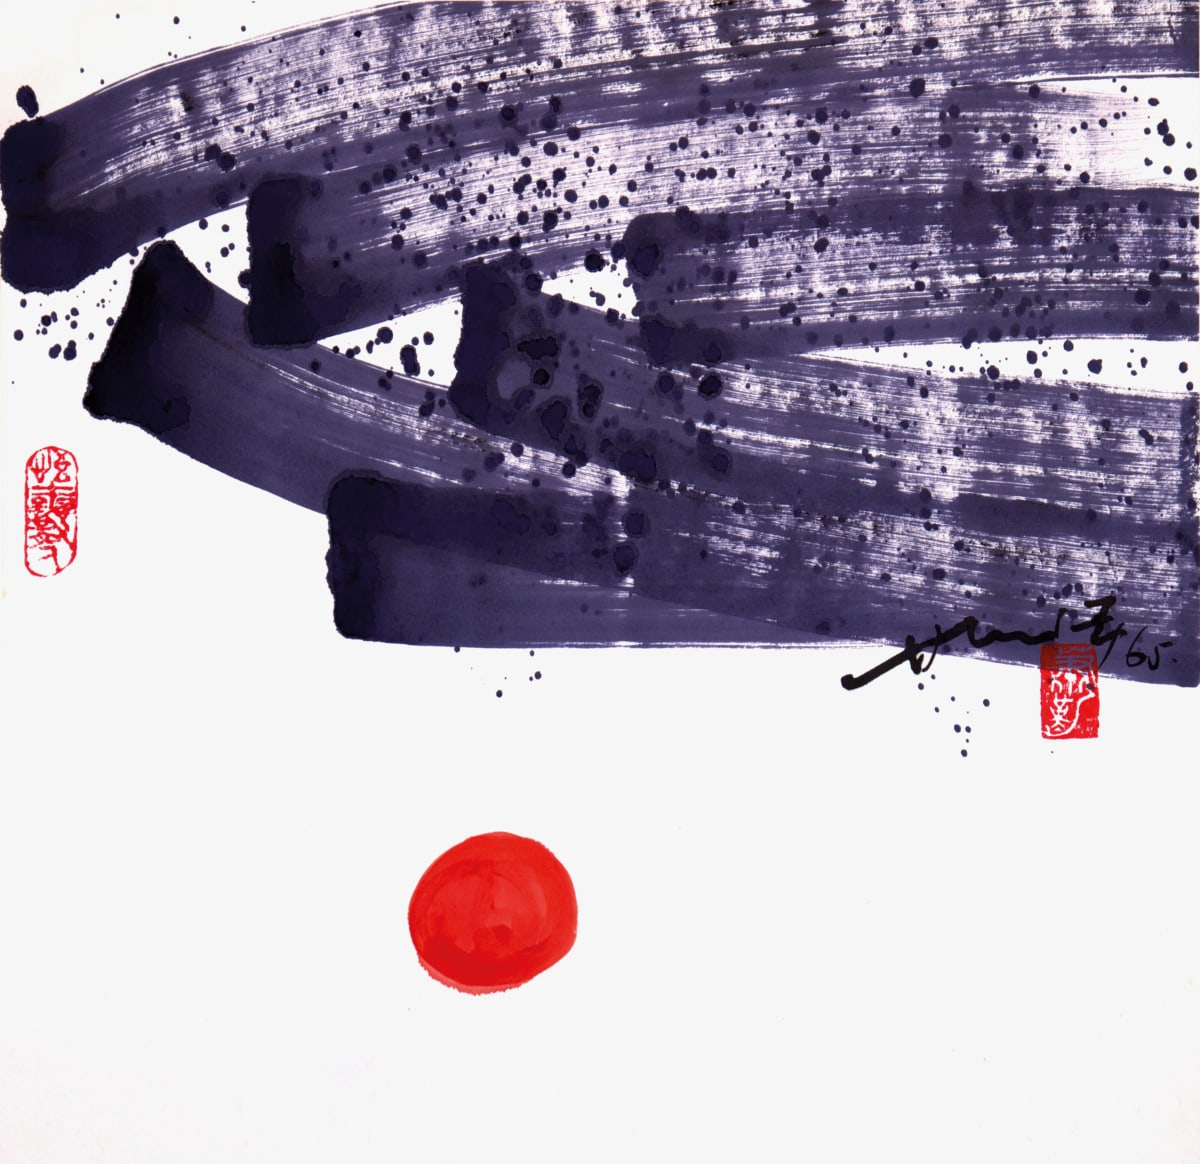 Hsiao Chin 蕭勤, Gathering the Force-1 力聚-1, 1965